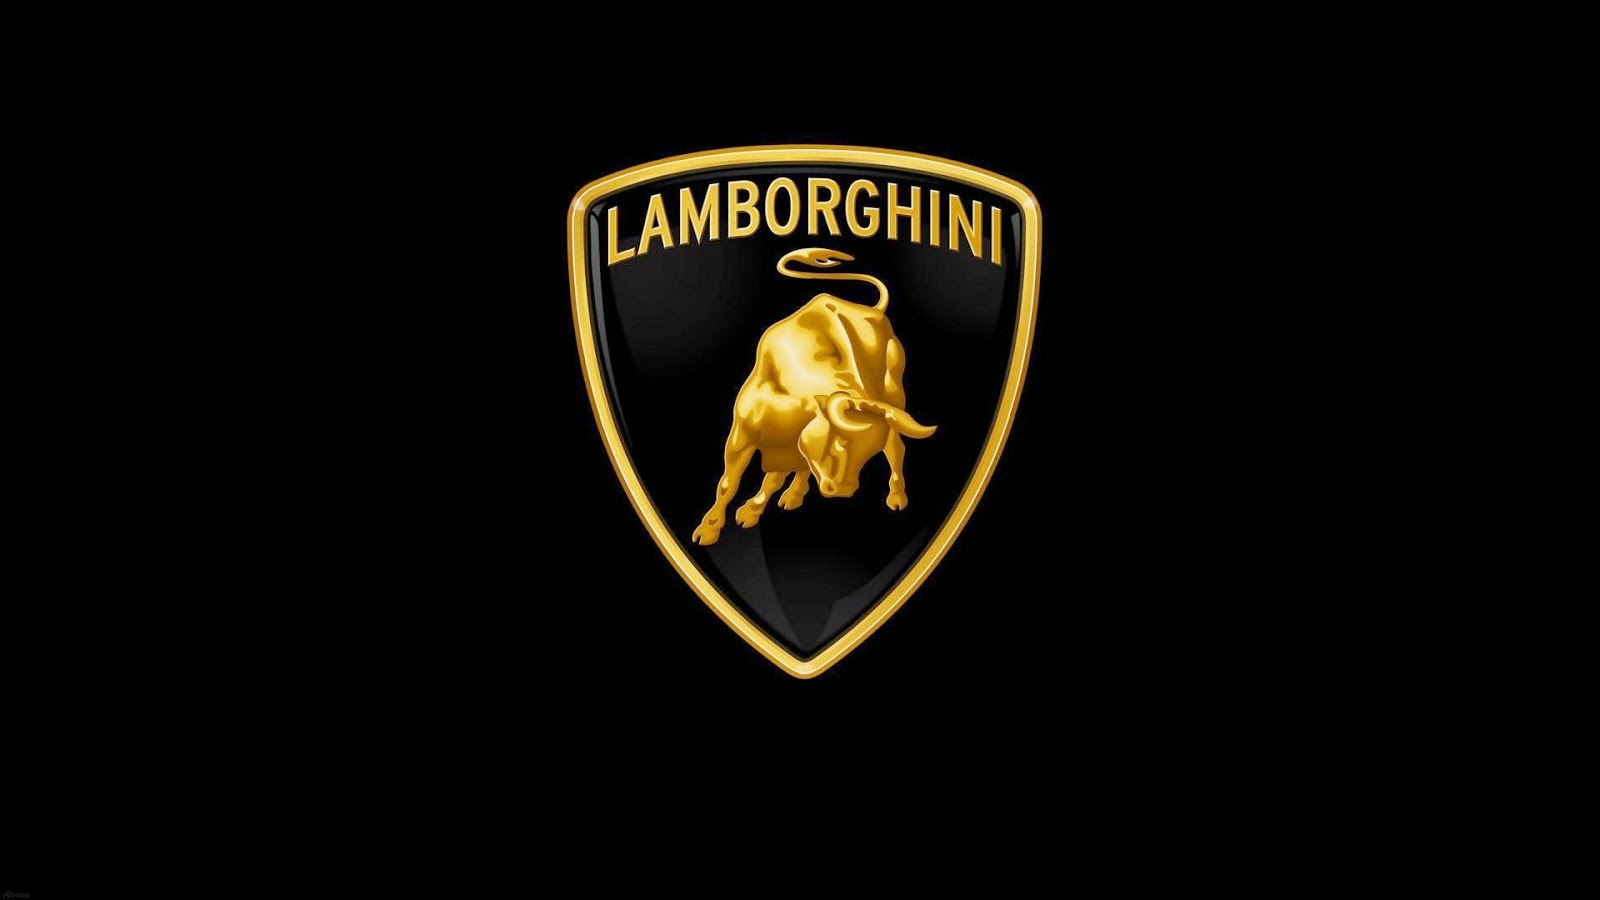 Lamborgini Car Logo Hd Wallpaper